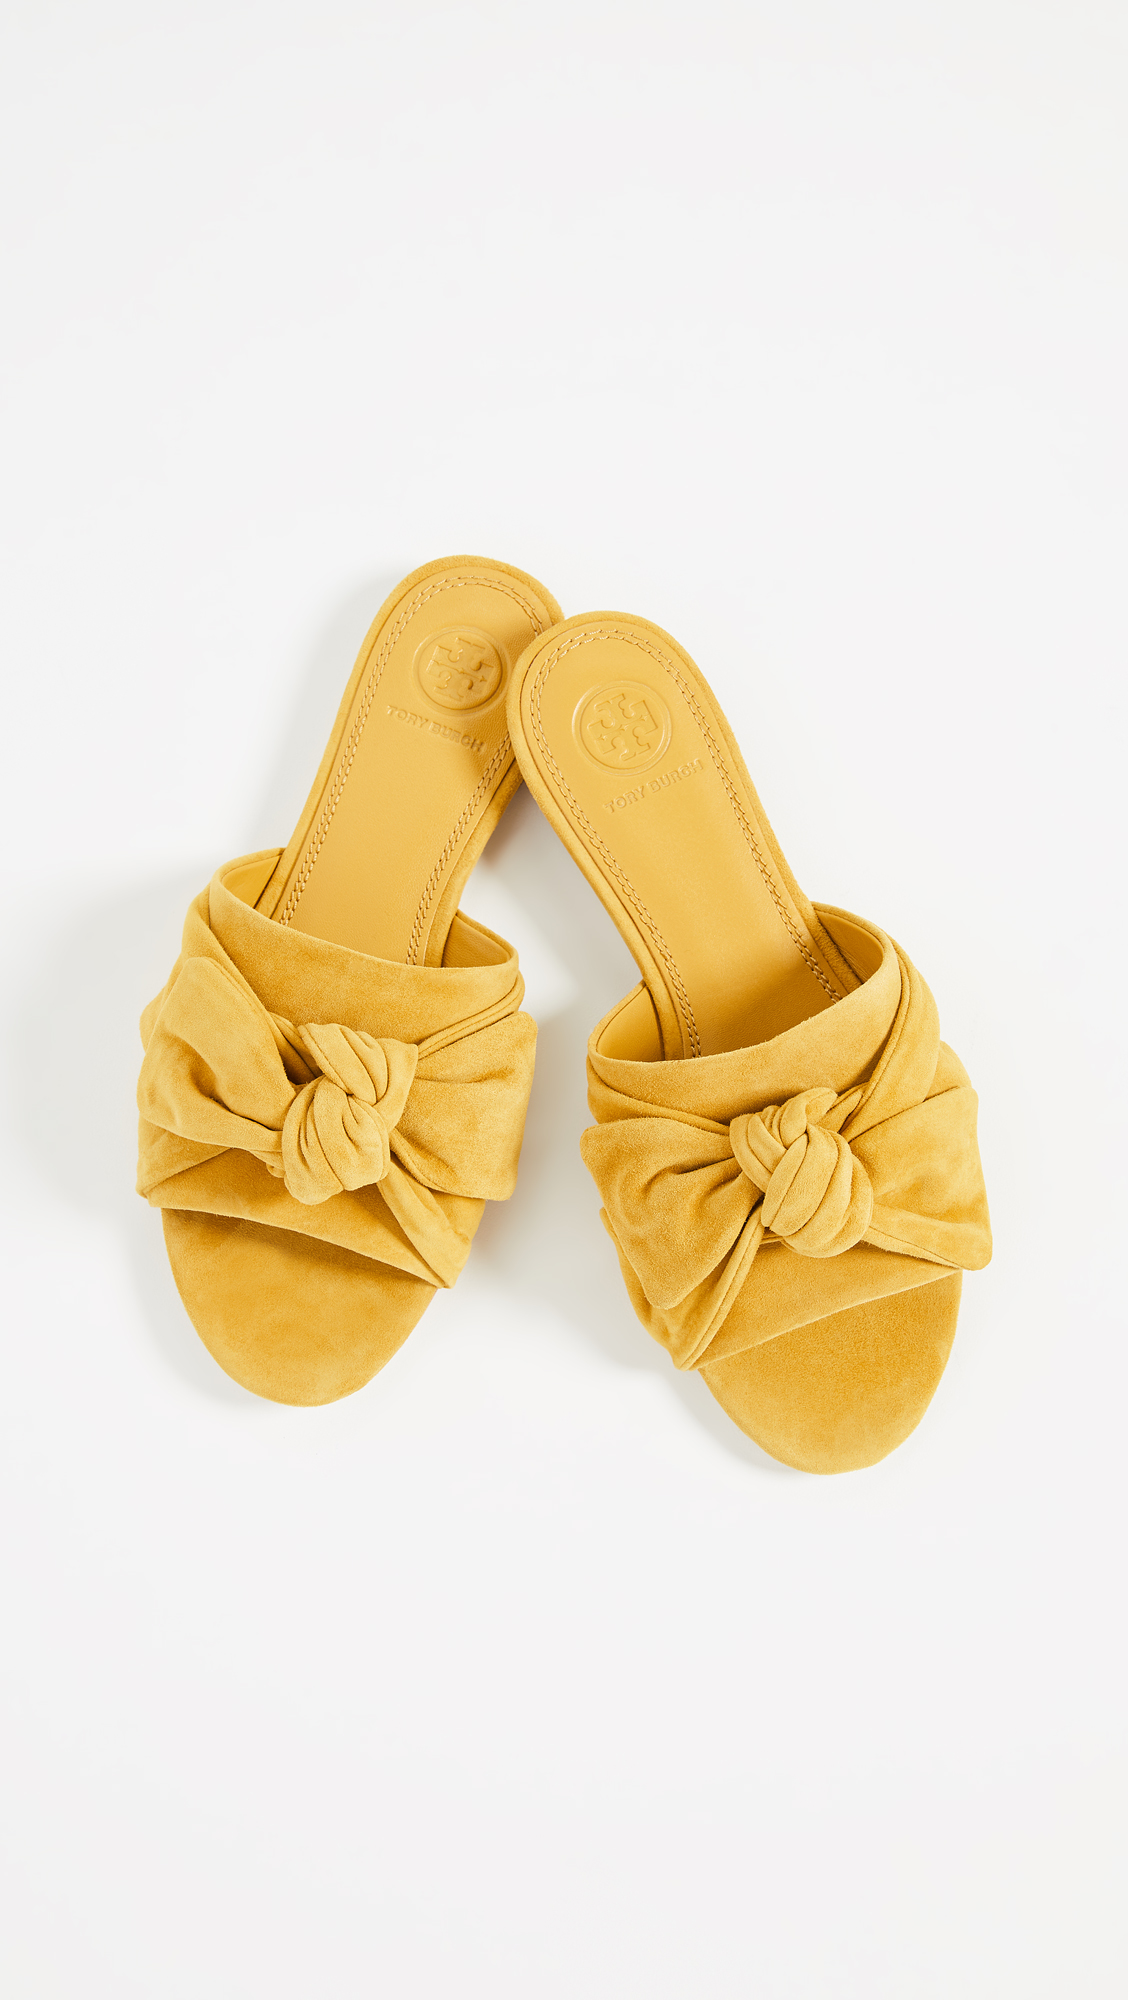 c33c663f631075 Tory Burch Annabelle Bow Slides